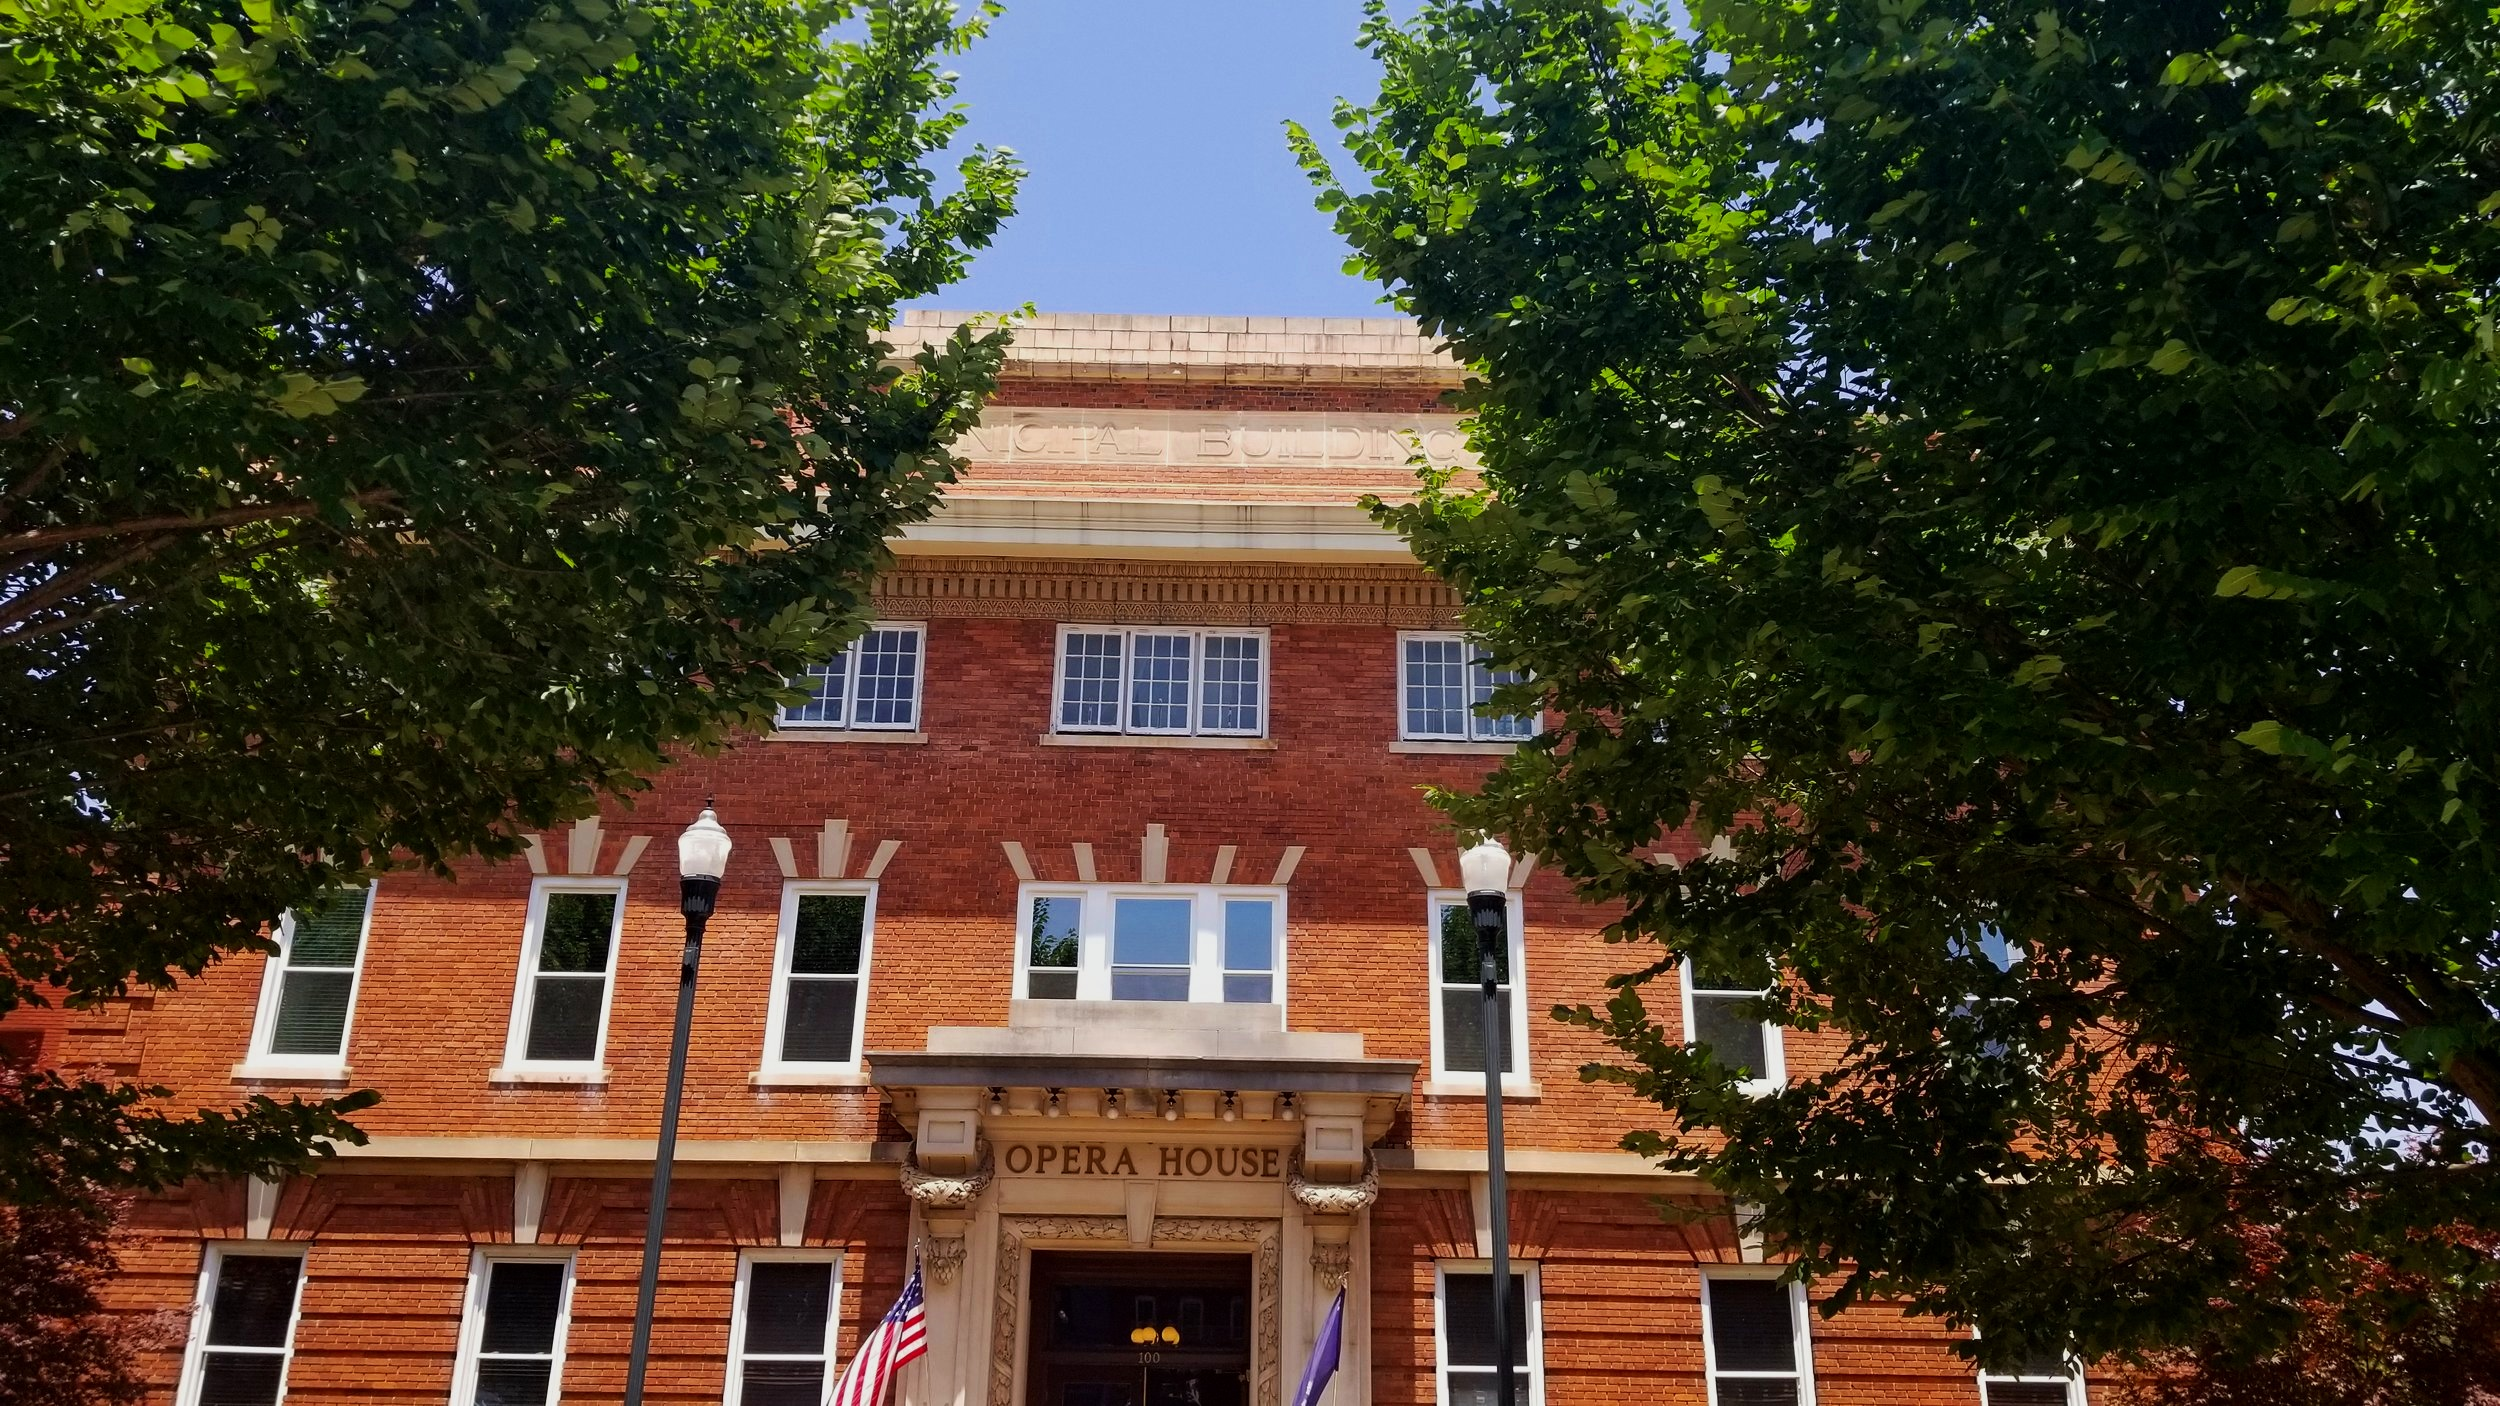 The Abbeville Opera House is perhaps the biggest draw to this small South Carolina town. Throughout the year there are plenty of opportunities to catch a show on the Opera House stage.